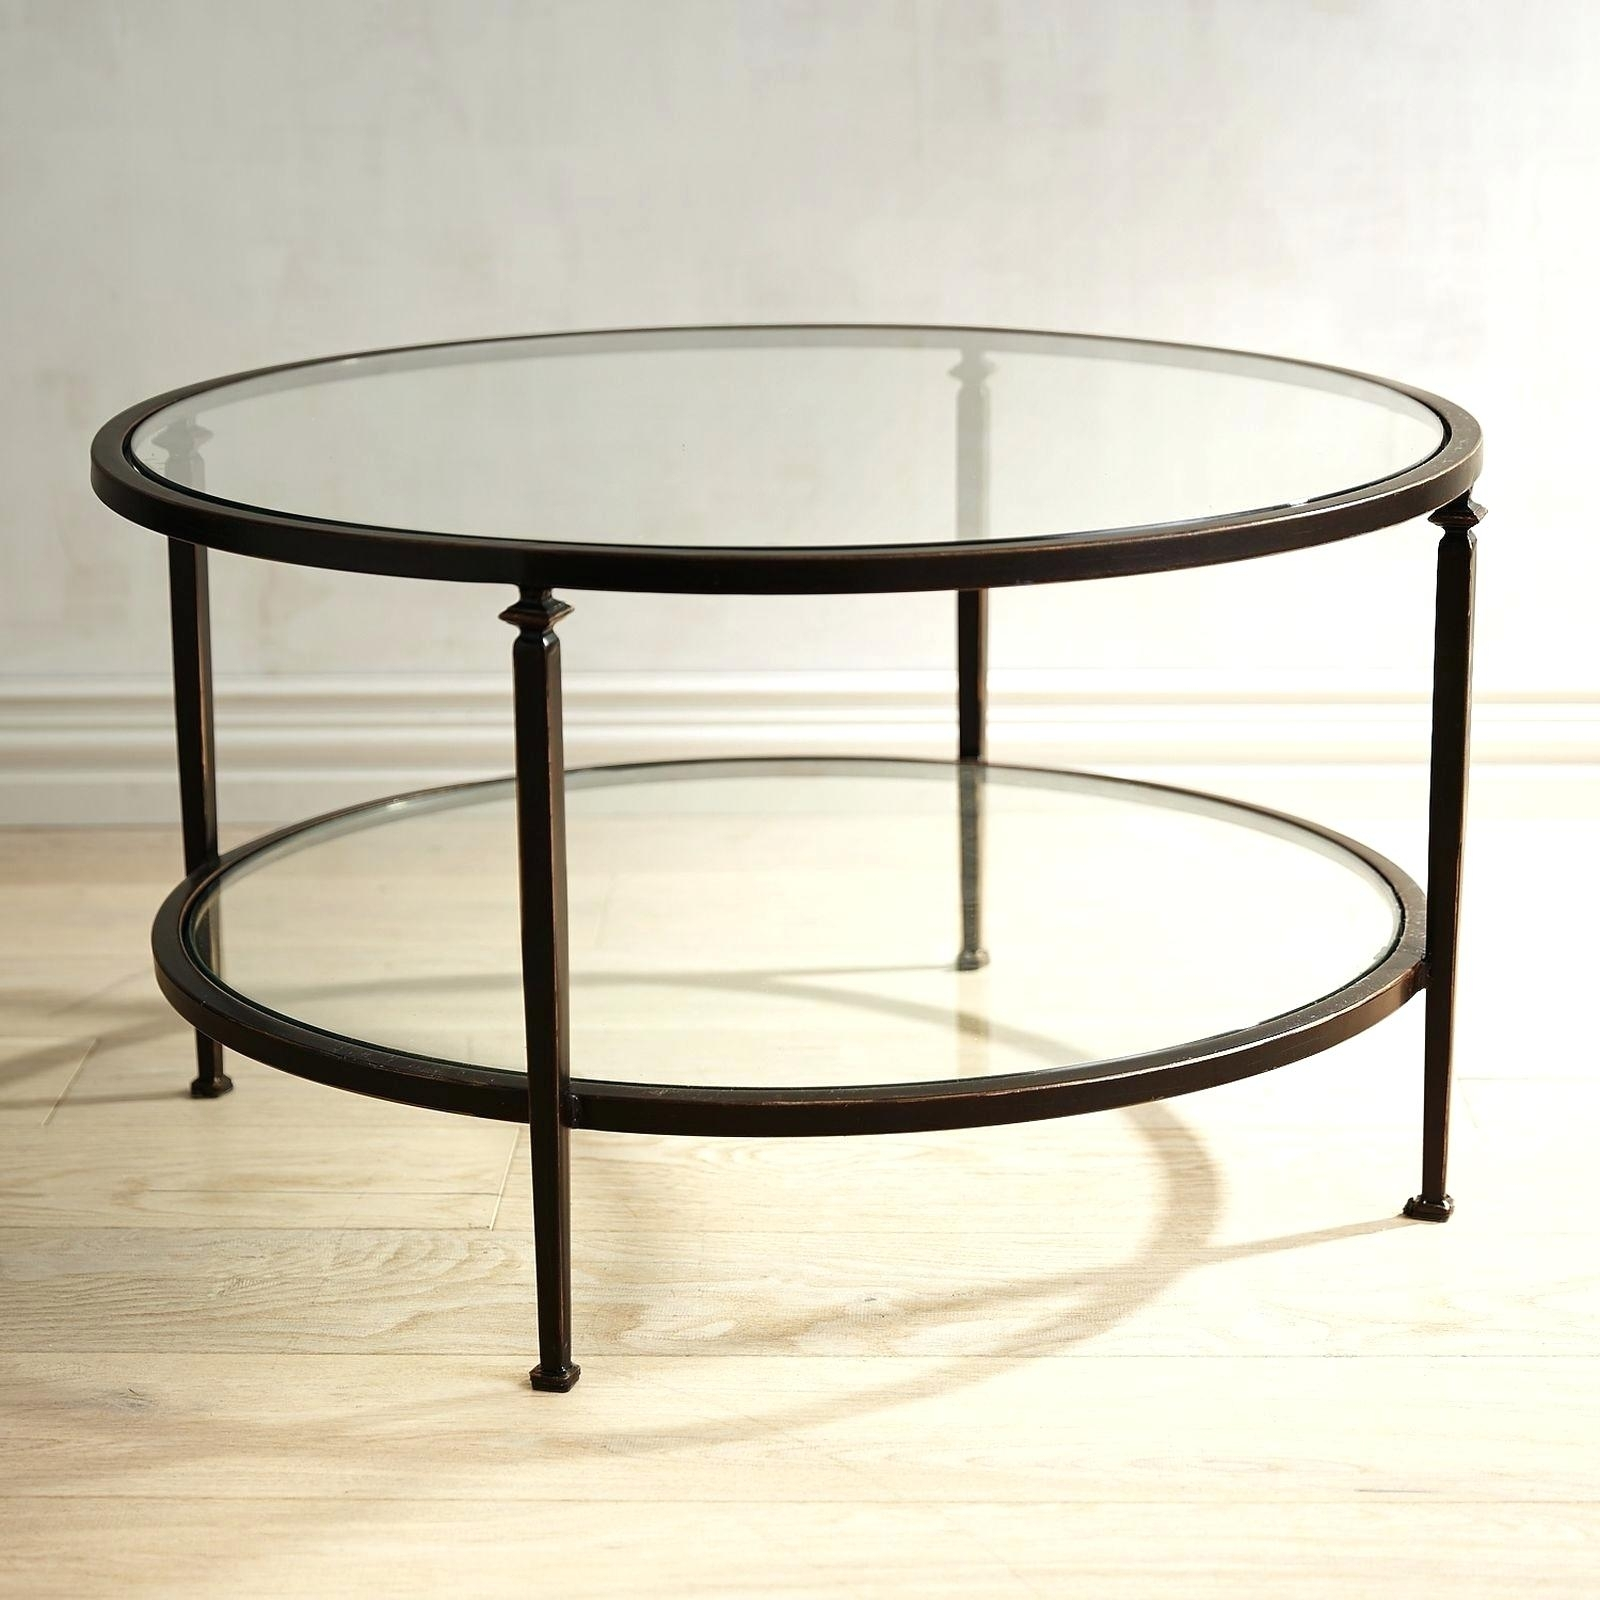 Round Glass And Iron Coffee Table Rustic Wood Sets Modern Metal with regard to Square Waterfall Coffee Tables (Image 17 of 30)